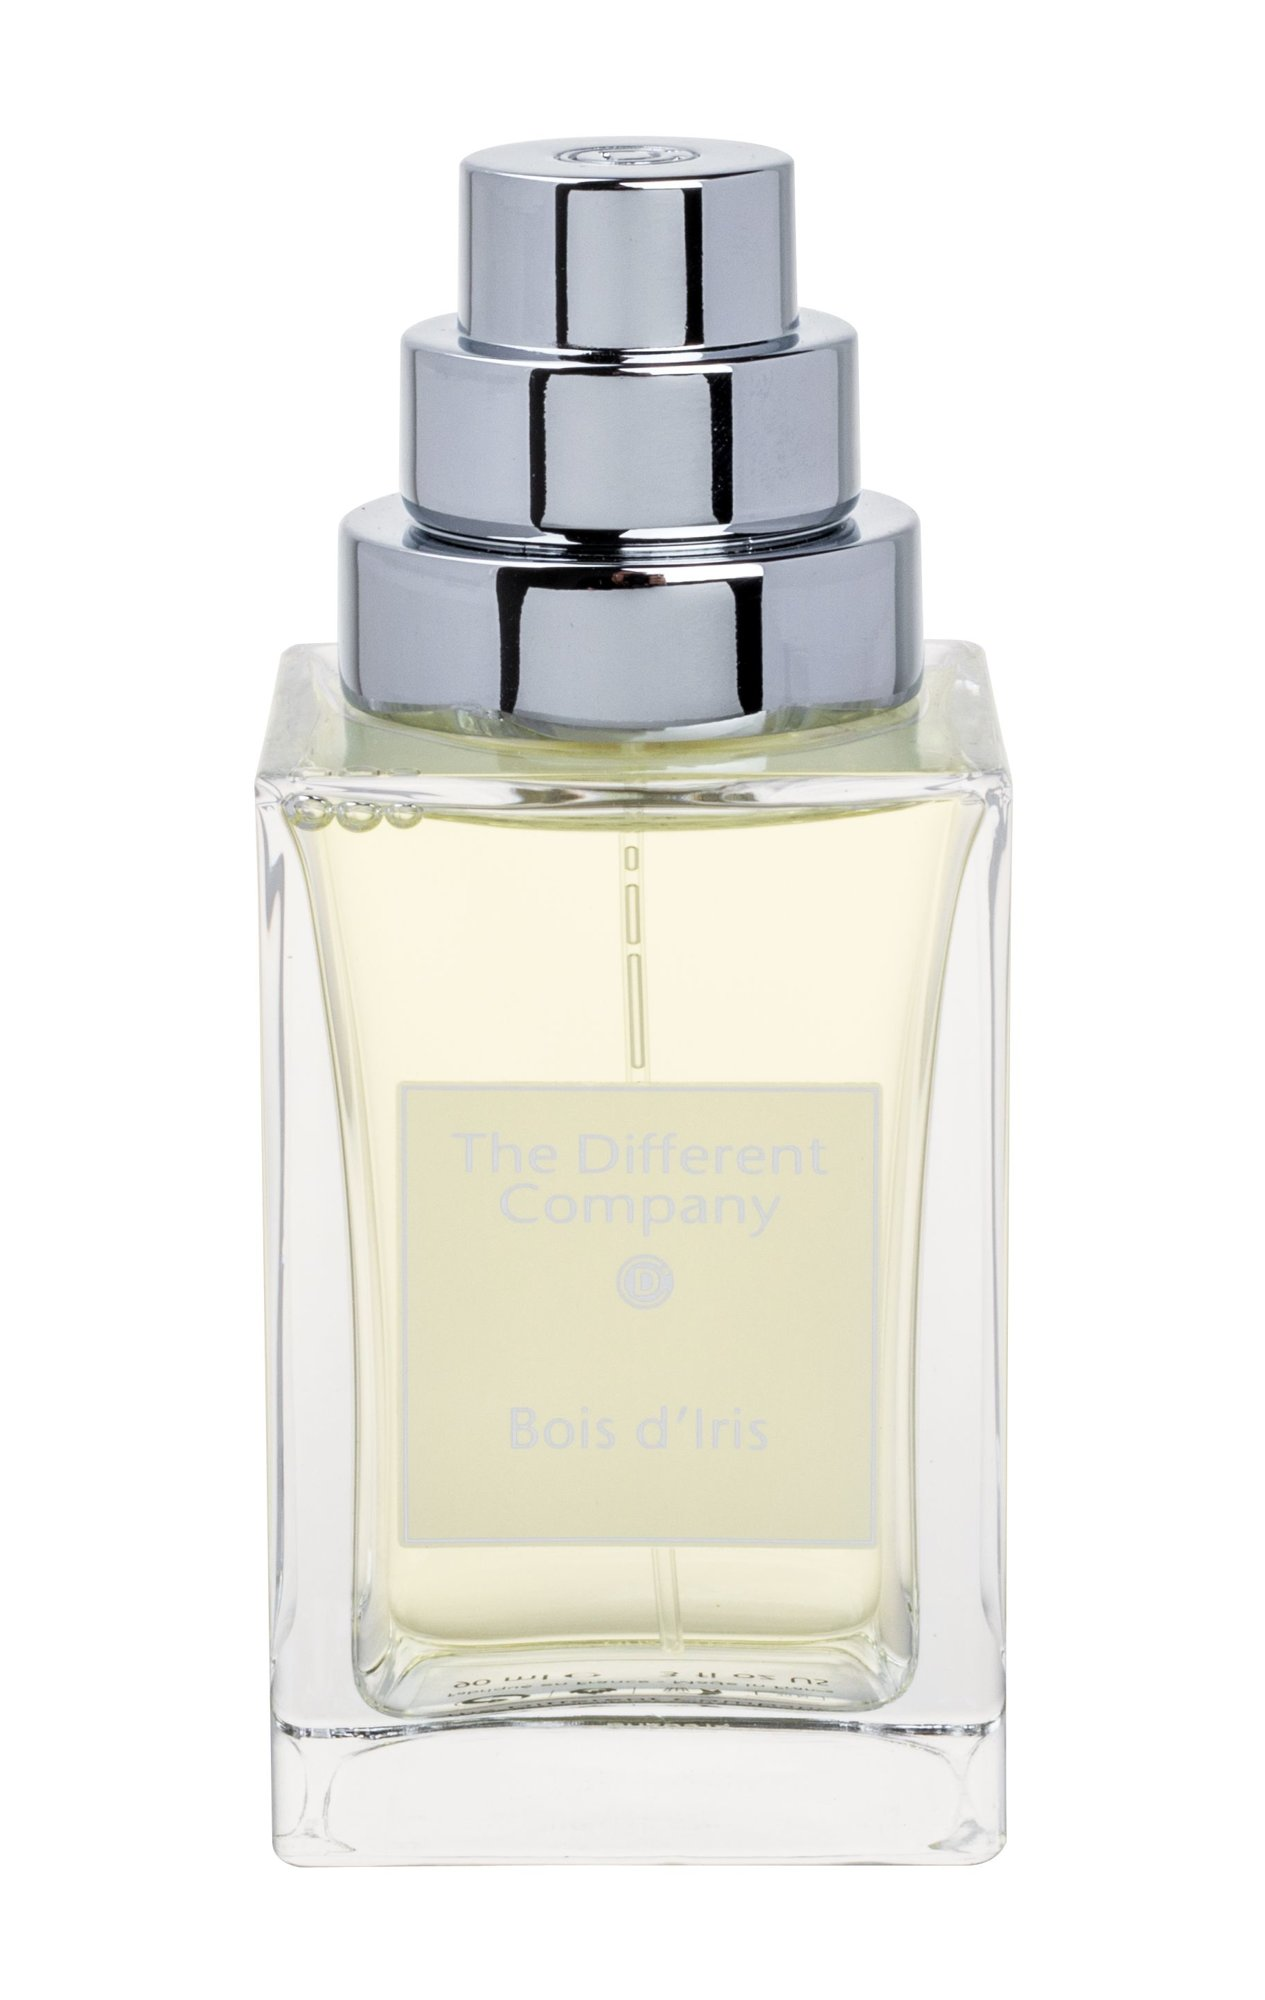 The Different Company Bois d´Iris EDT 90ml